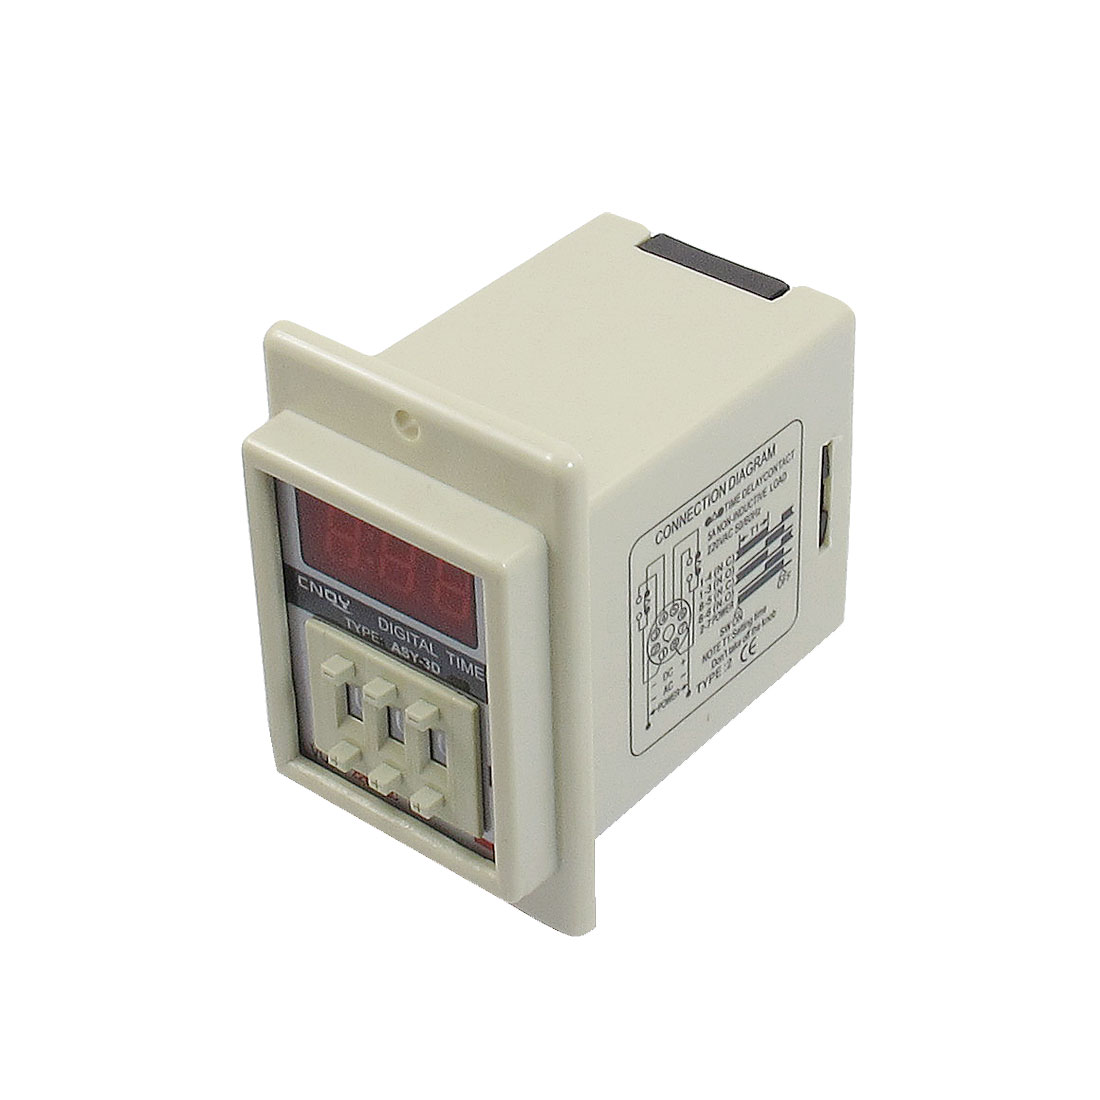 ASY-3D AC 220V 999 Minute Digital Timer Programmable Time Delay Relay White